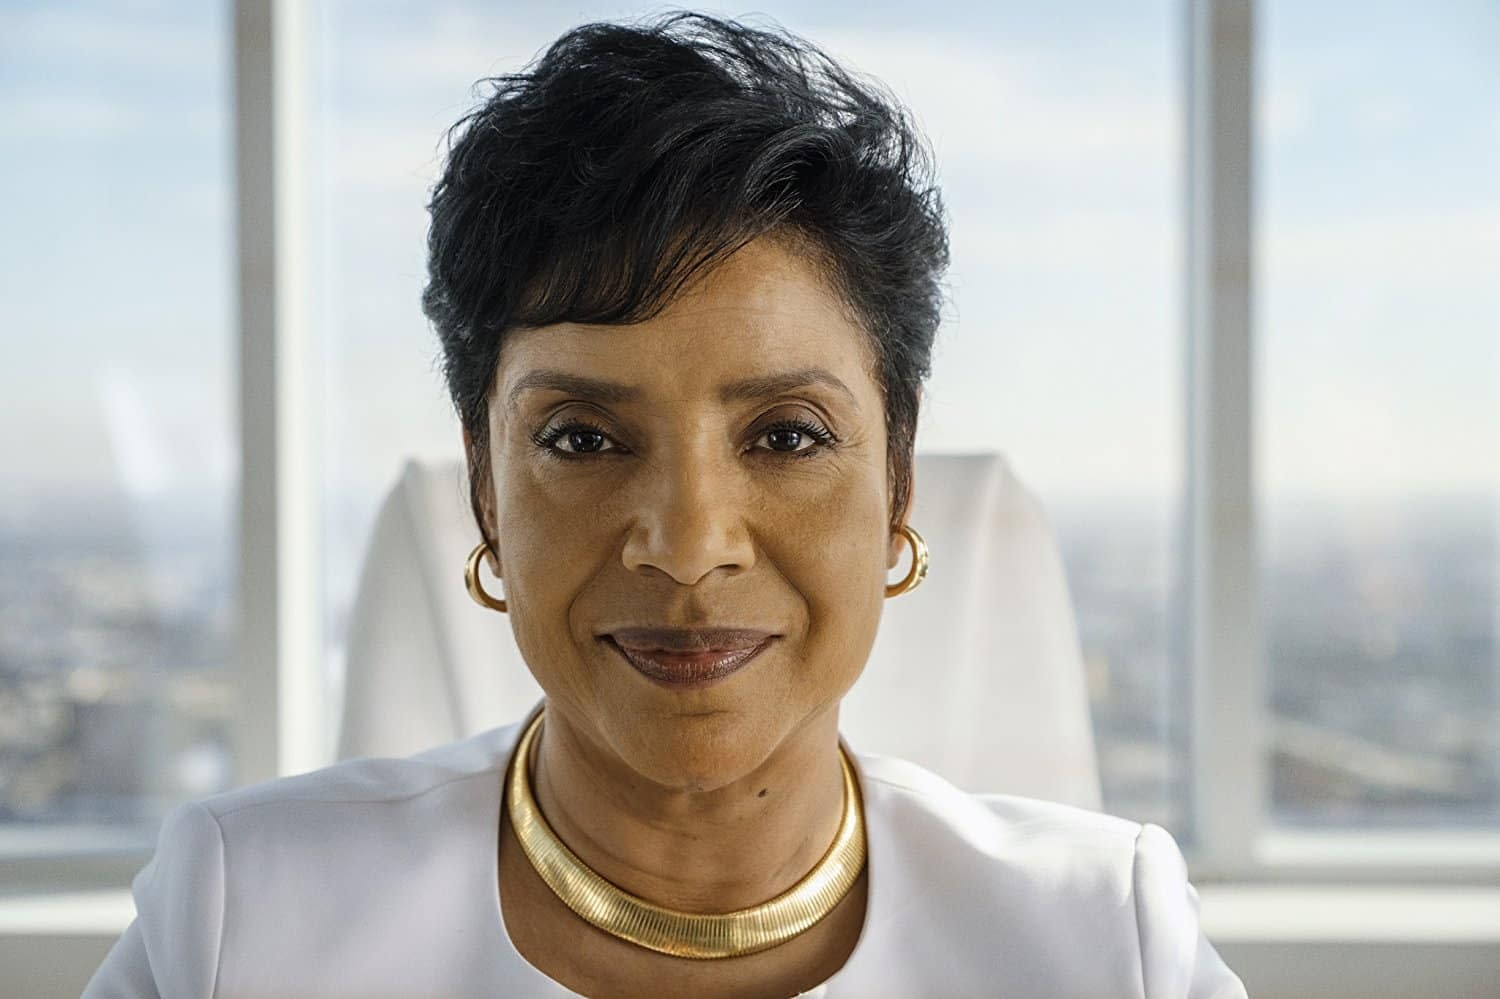 This Is Us Season 3: The Cosby Show's Phylicia Rashad Cast as Beth's Mom